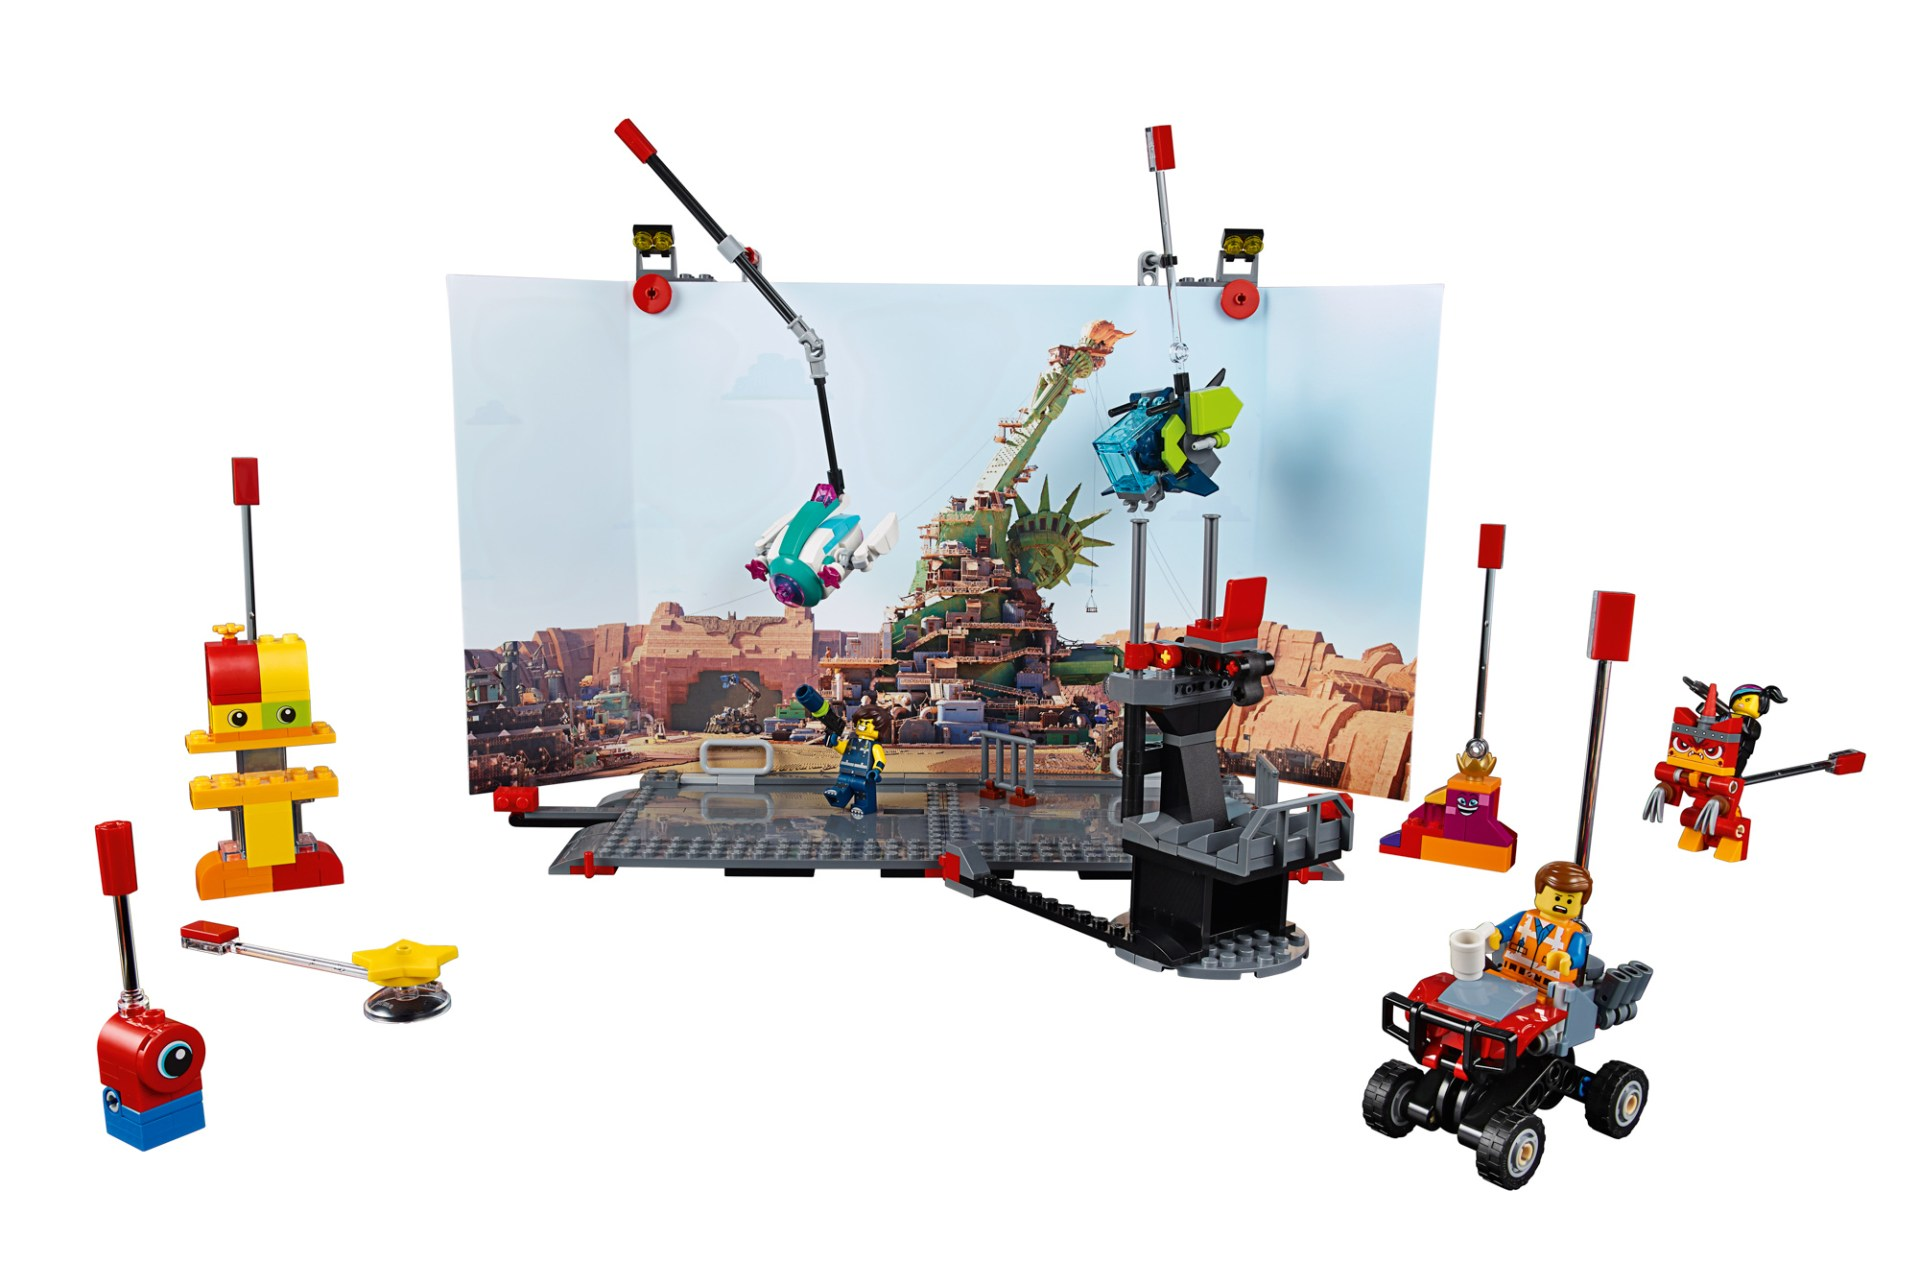 70820 — LEGO Movie Maker